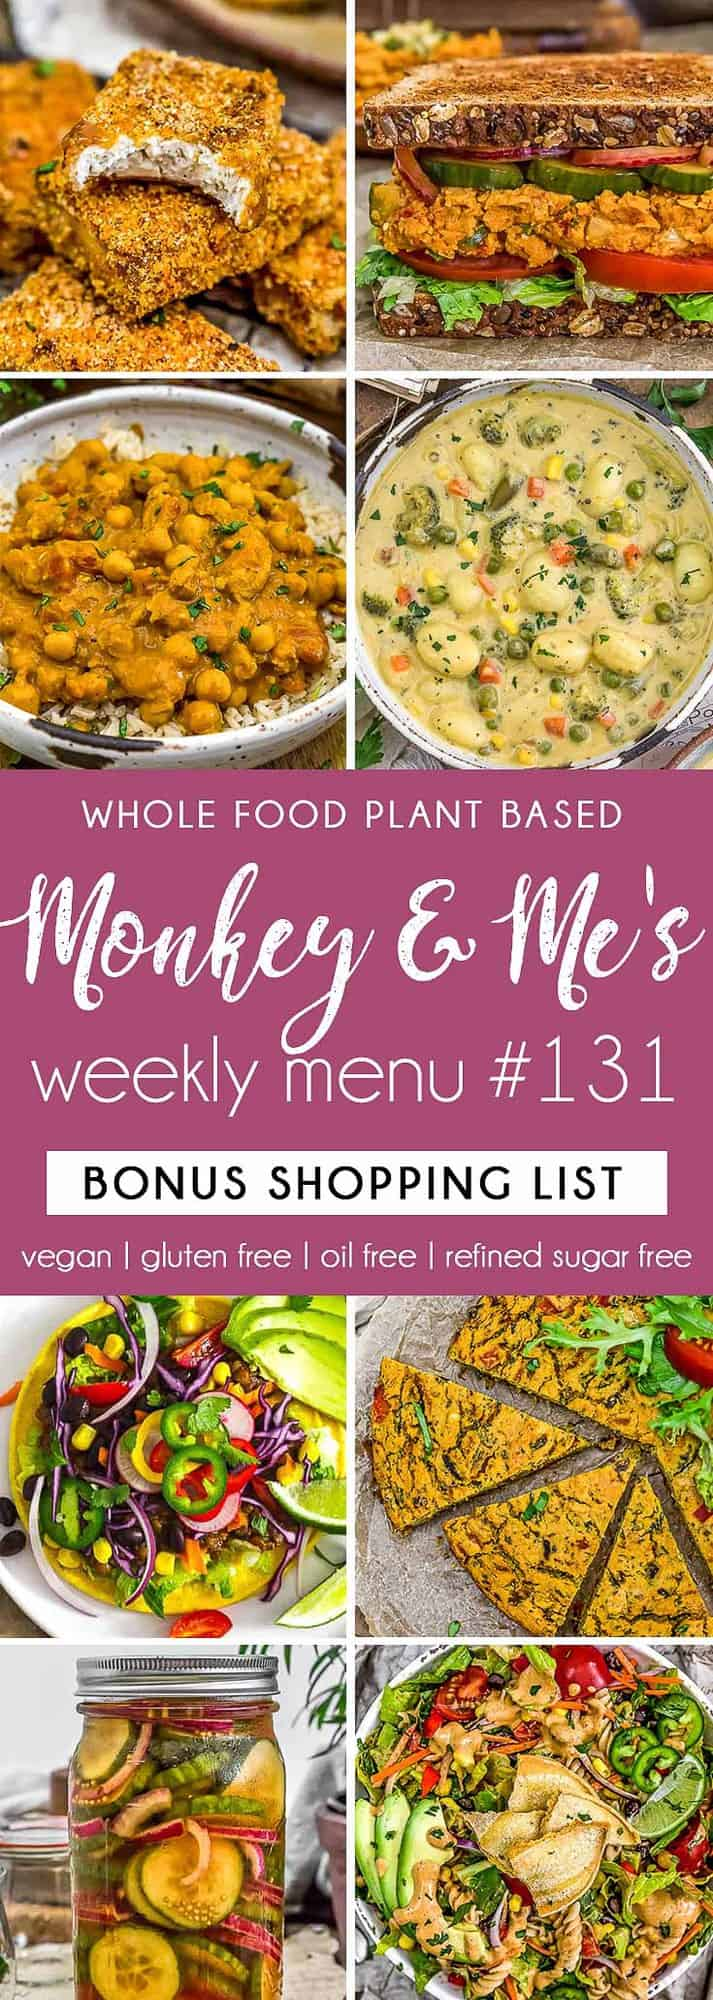 Monkey and Me's Menu 131 featuring 8 recipes